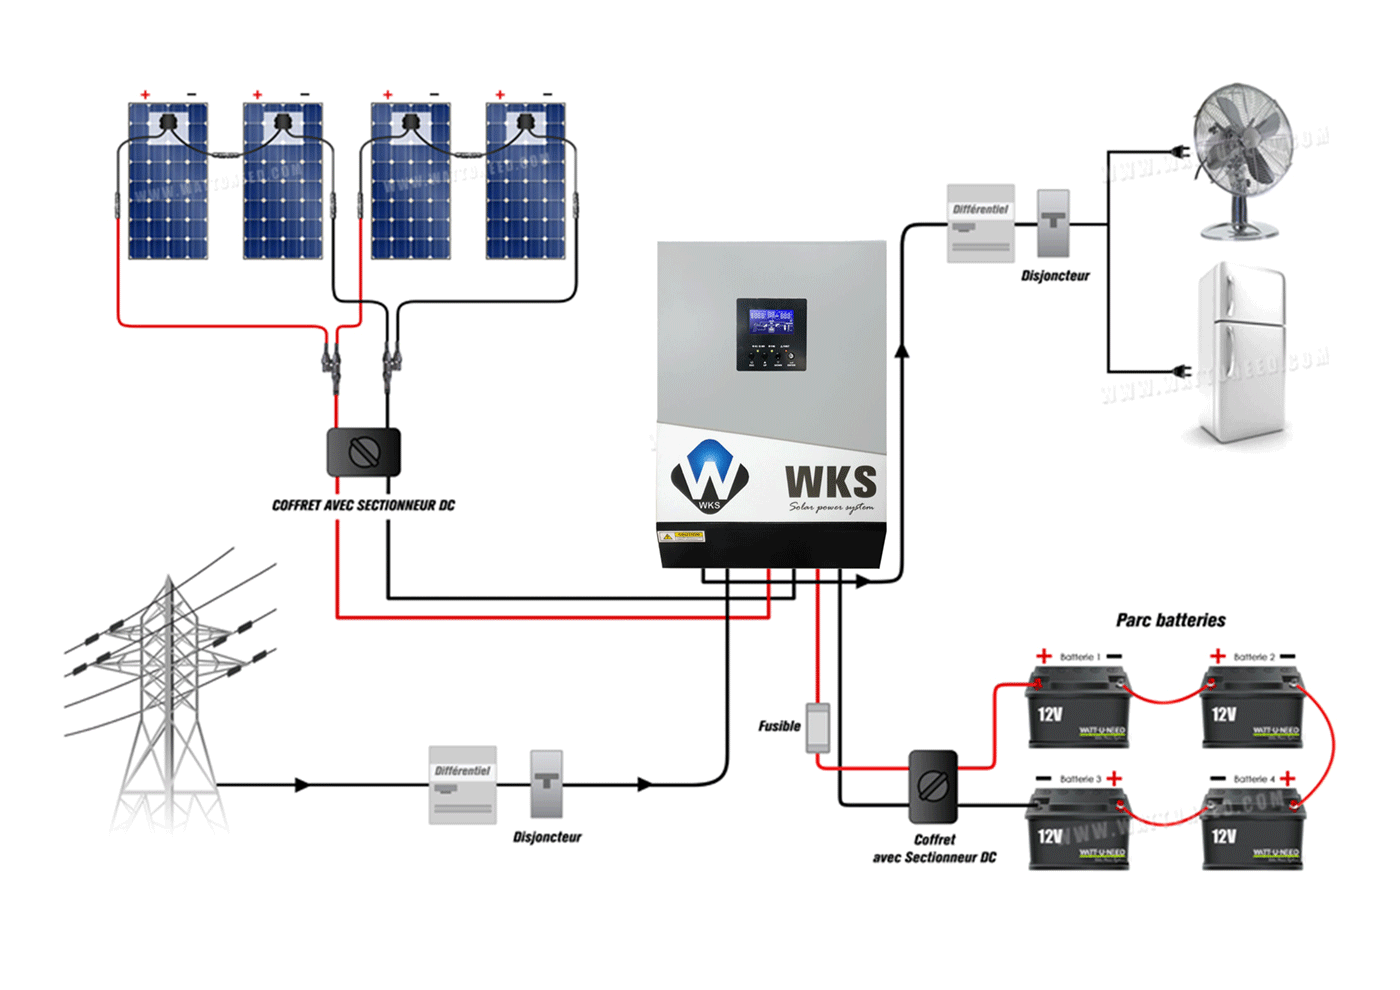 Wks 5kva 48v Inverter Fox Battery Charger Wiring Diagram Schema Fonctionnement Onduleur Hybride